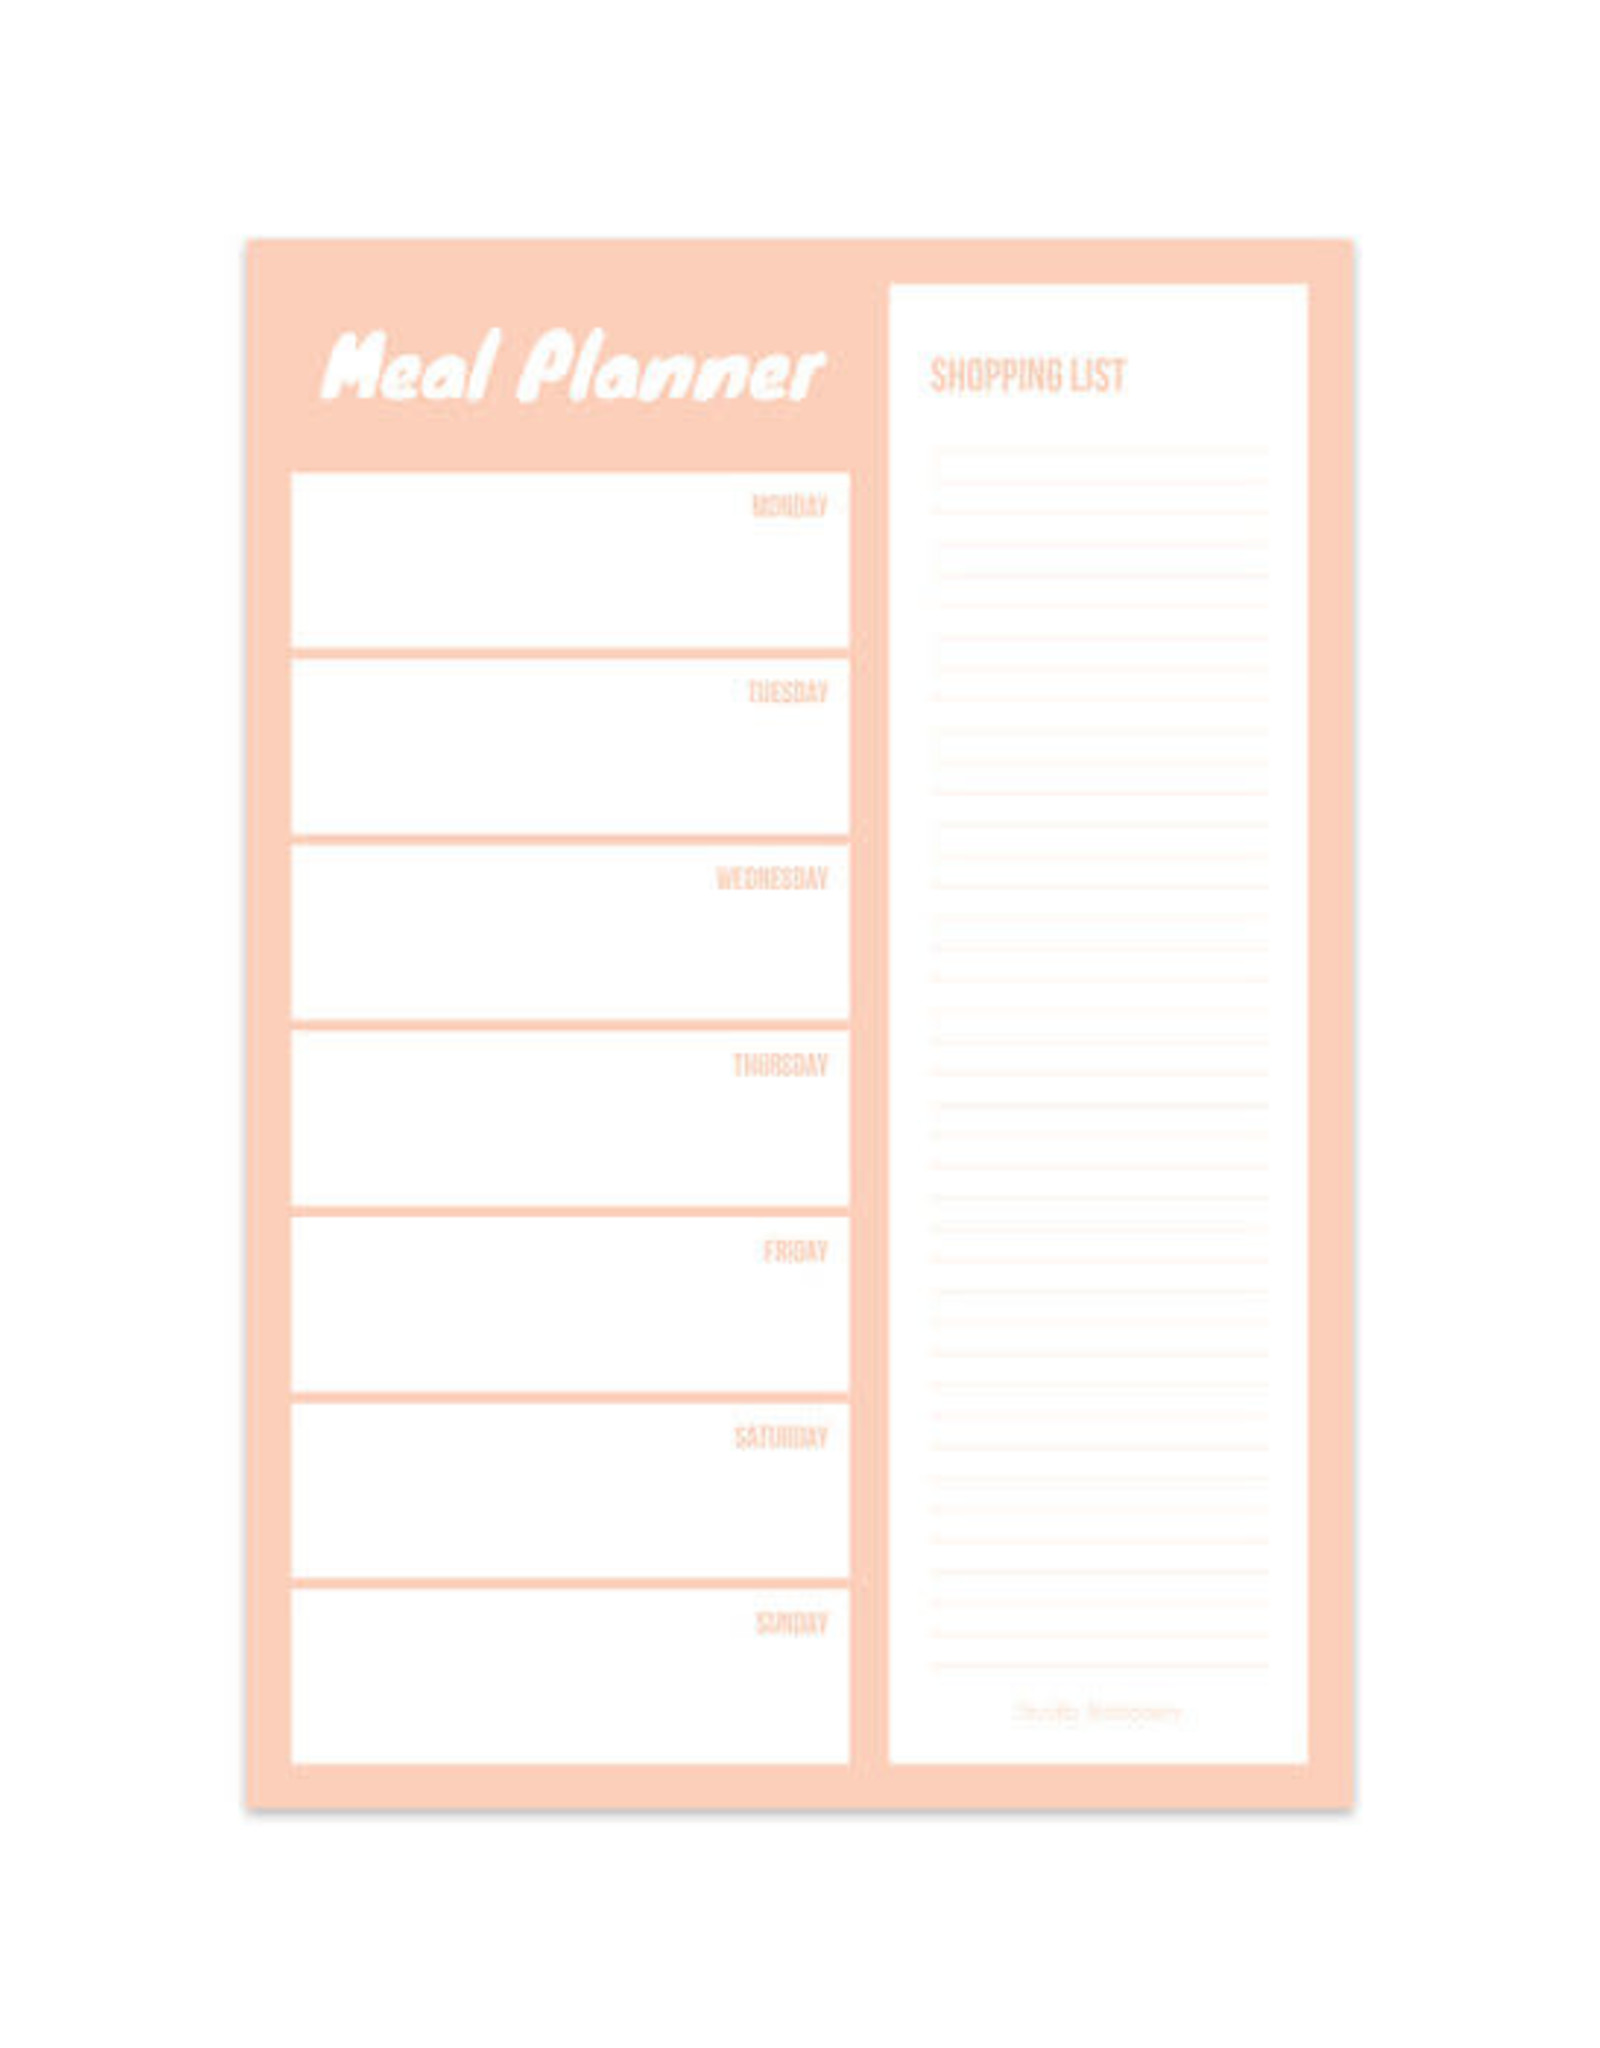 studio stationery meal planner